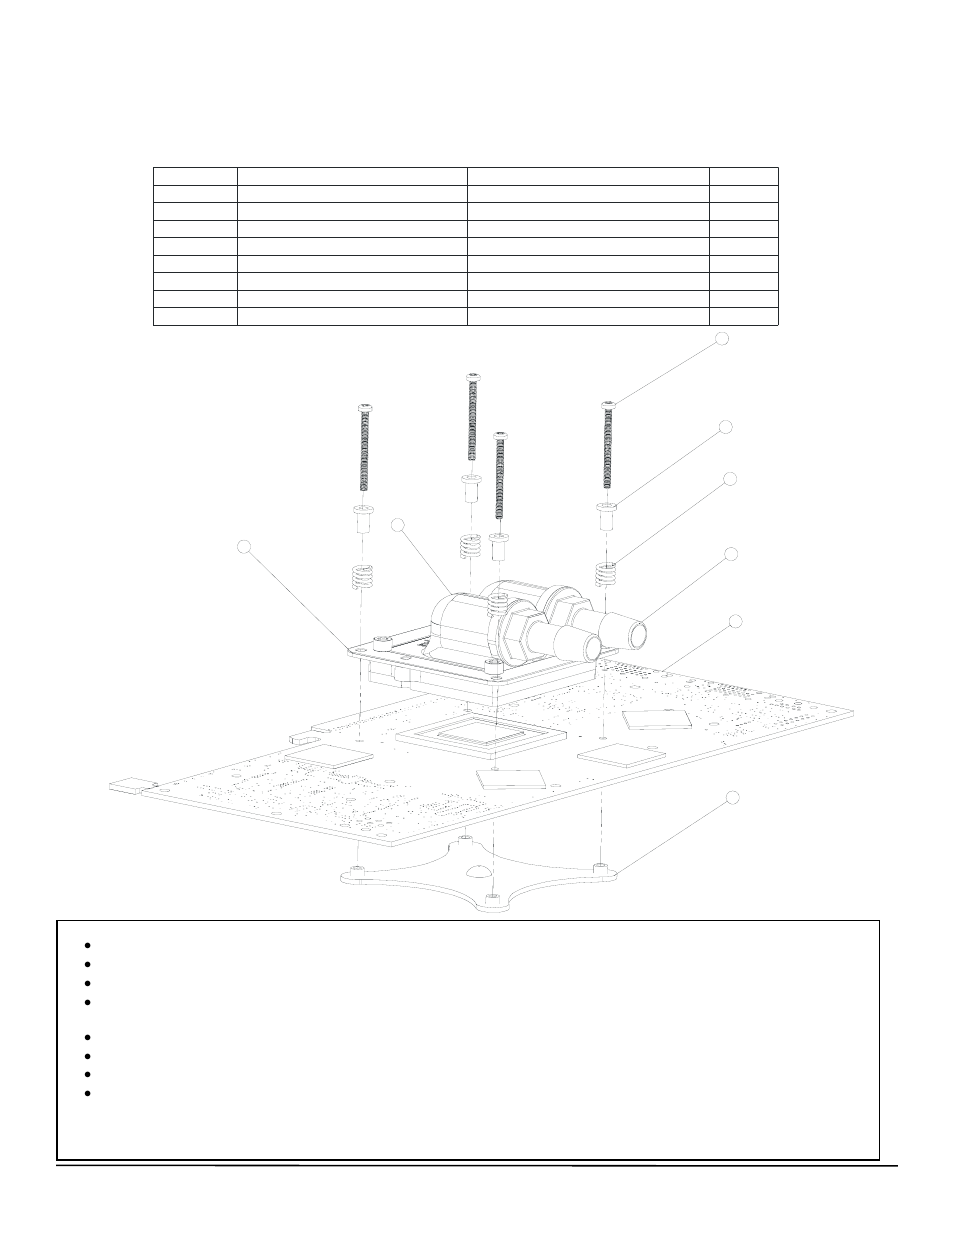 Swiftech MCW60 User Manual | Page 3 / 4